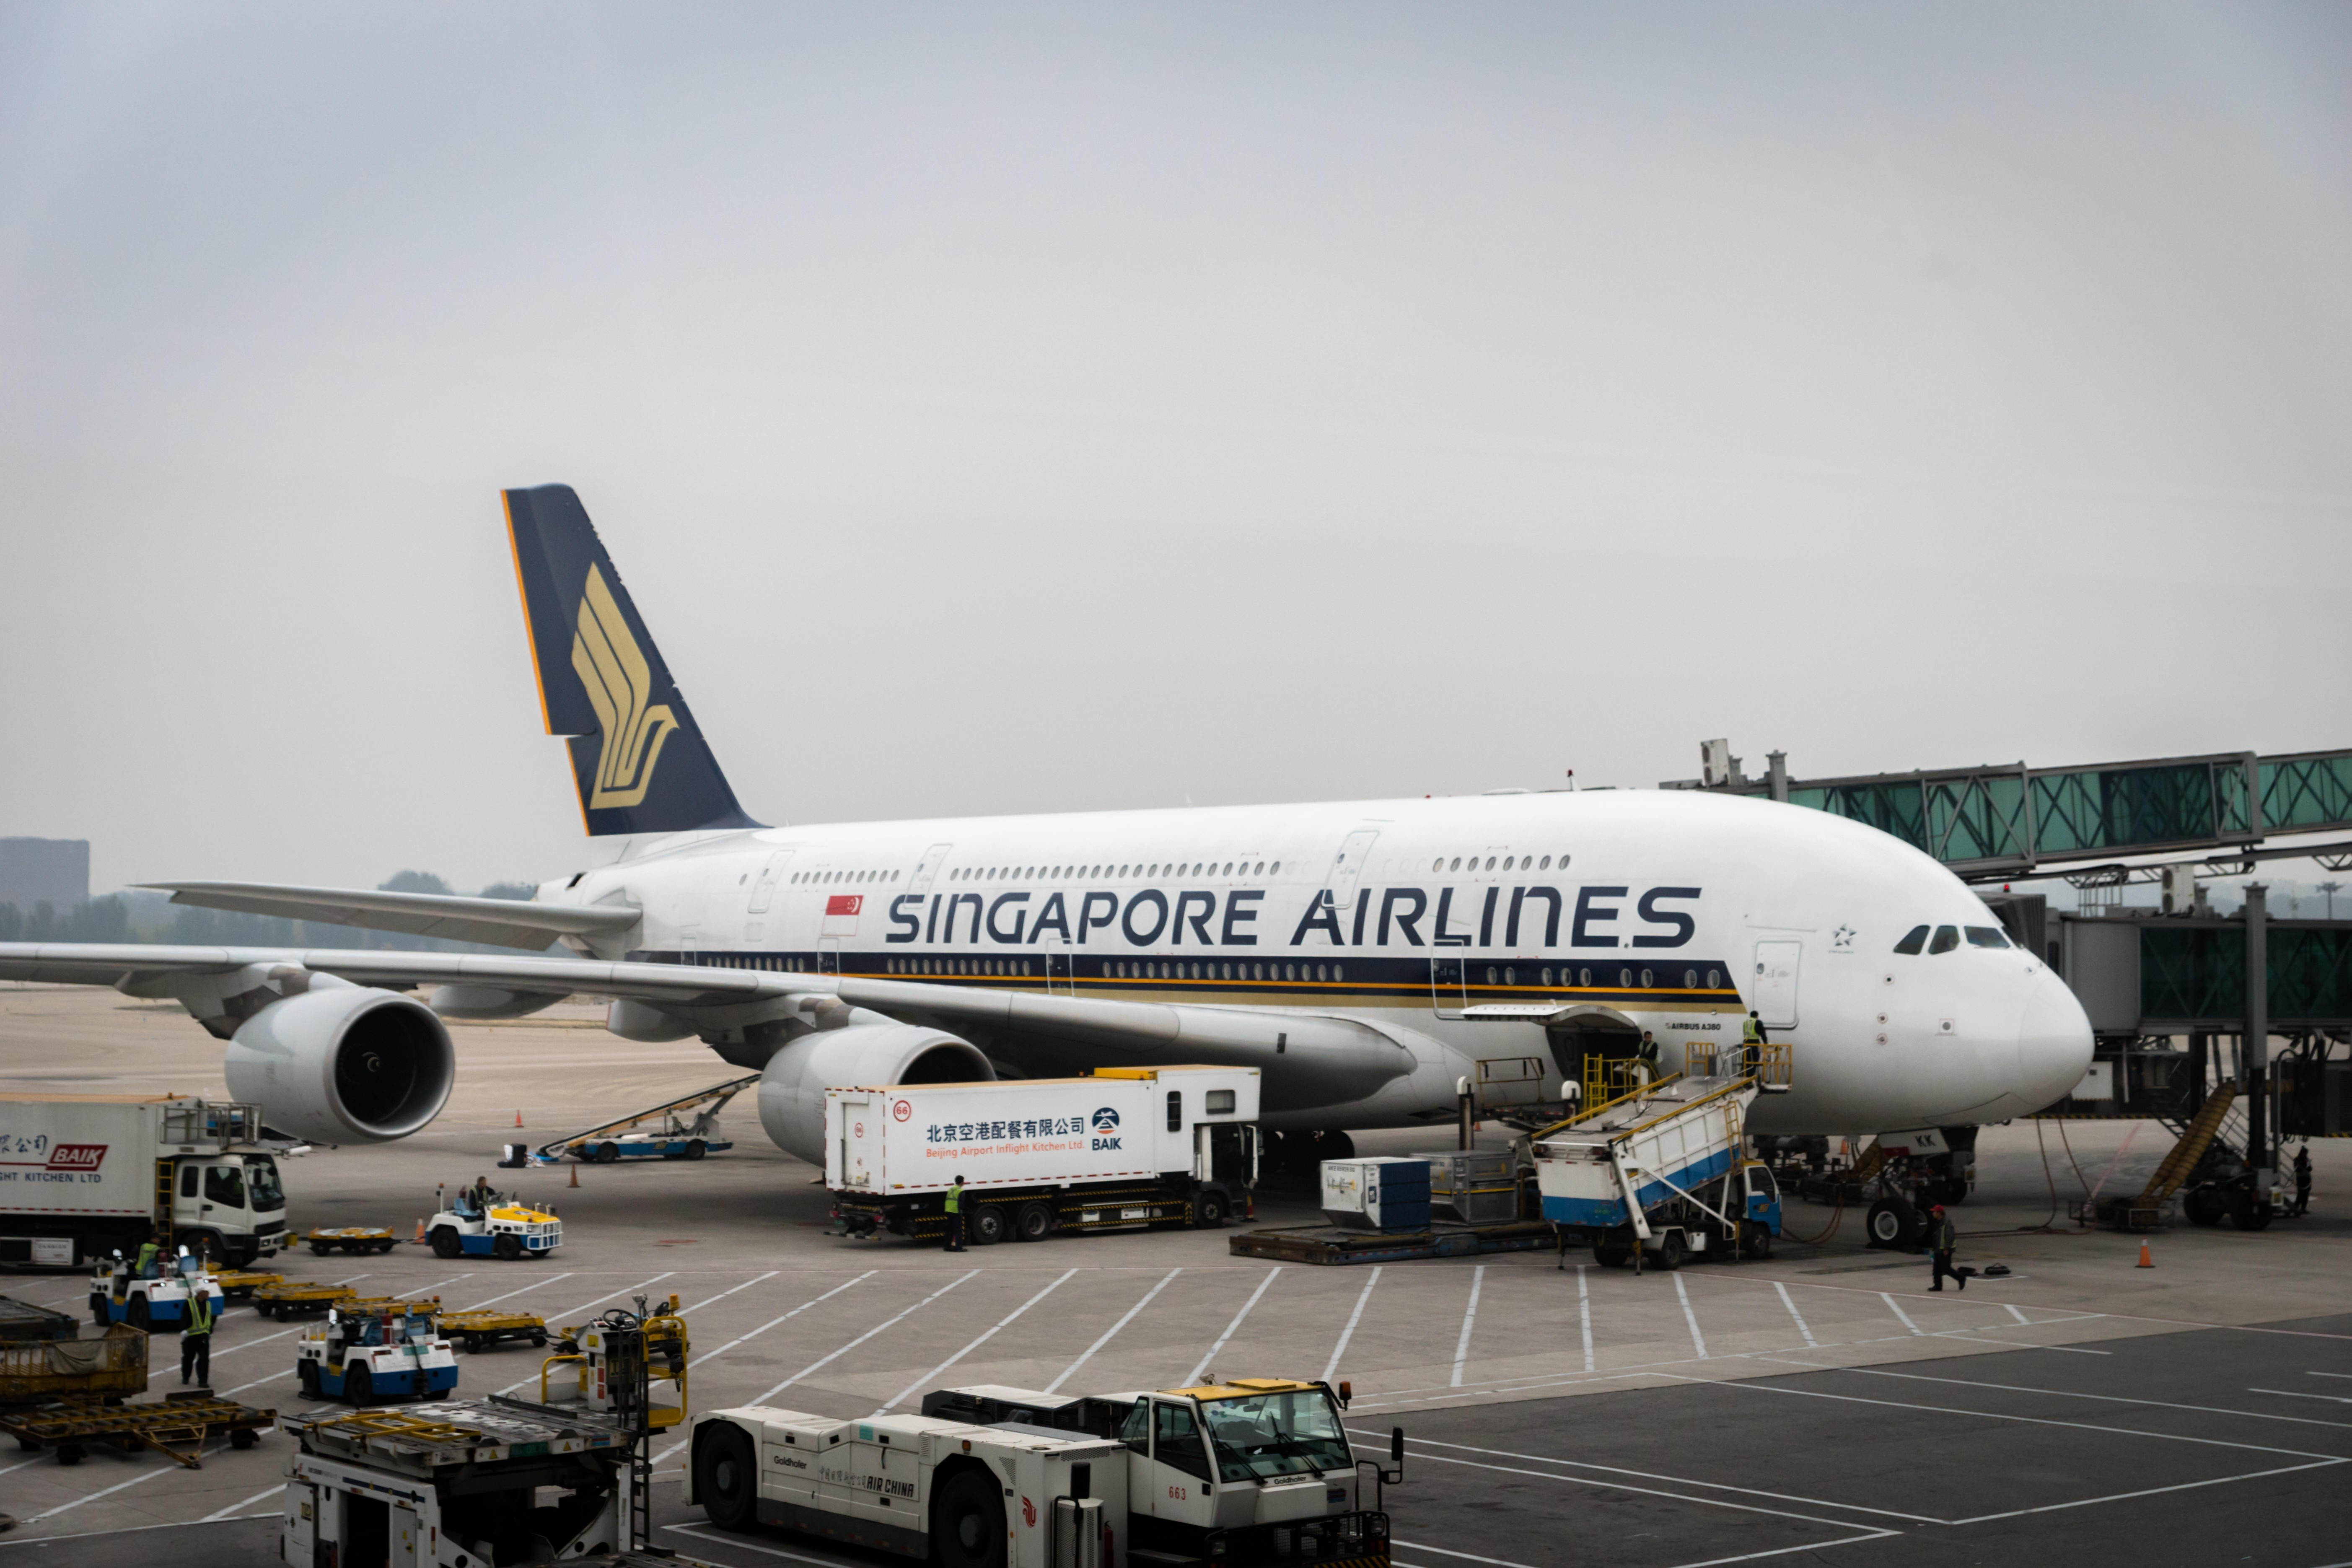 World's best airline 2018: Singapore Airlines voted winner, toppling